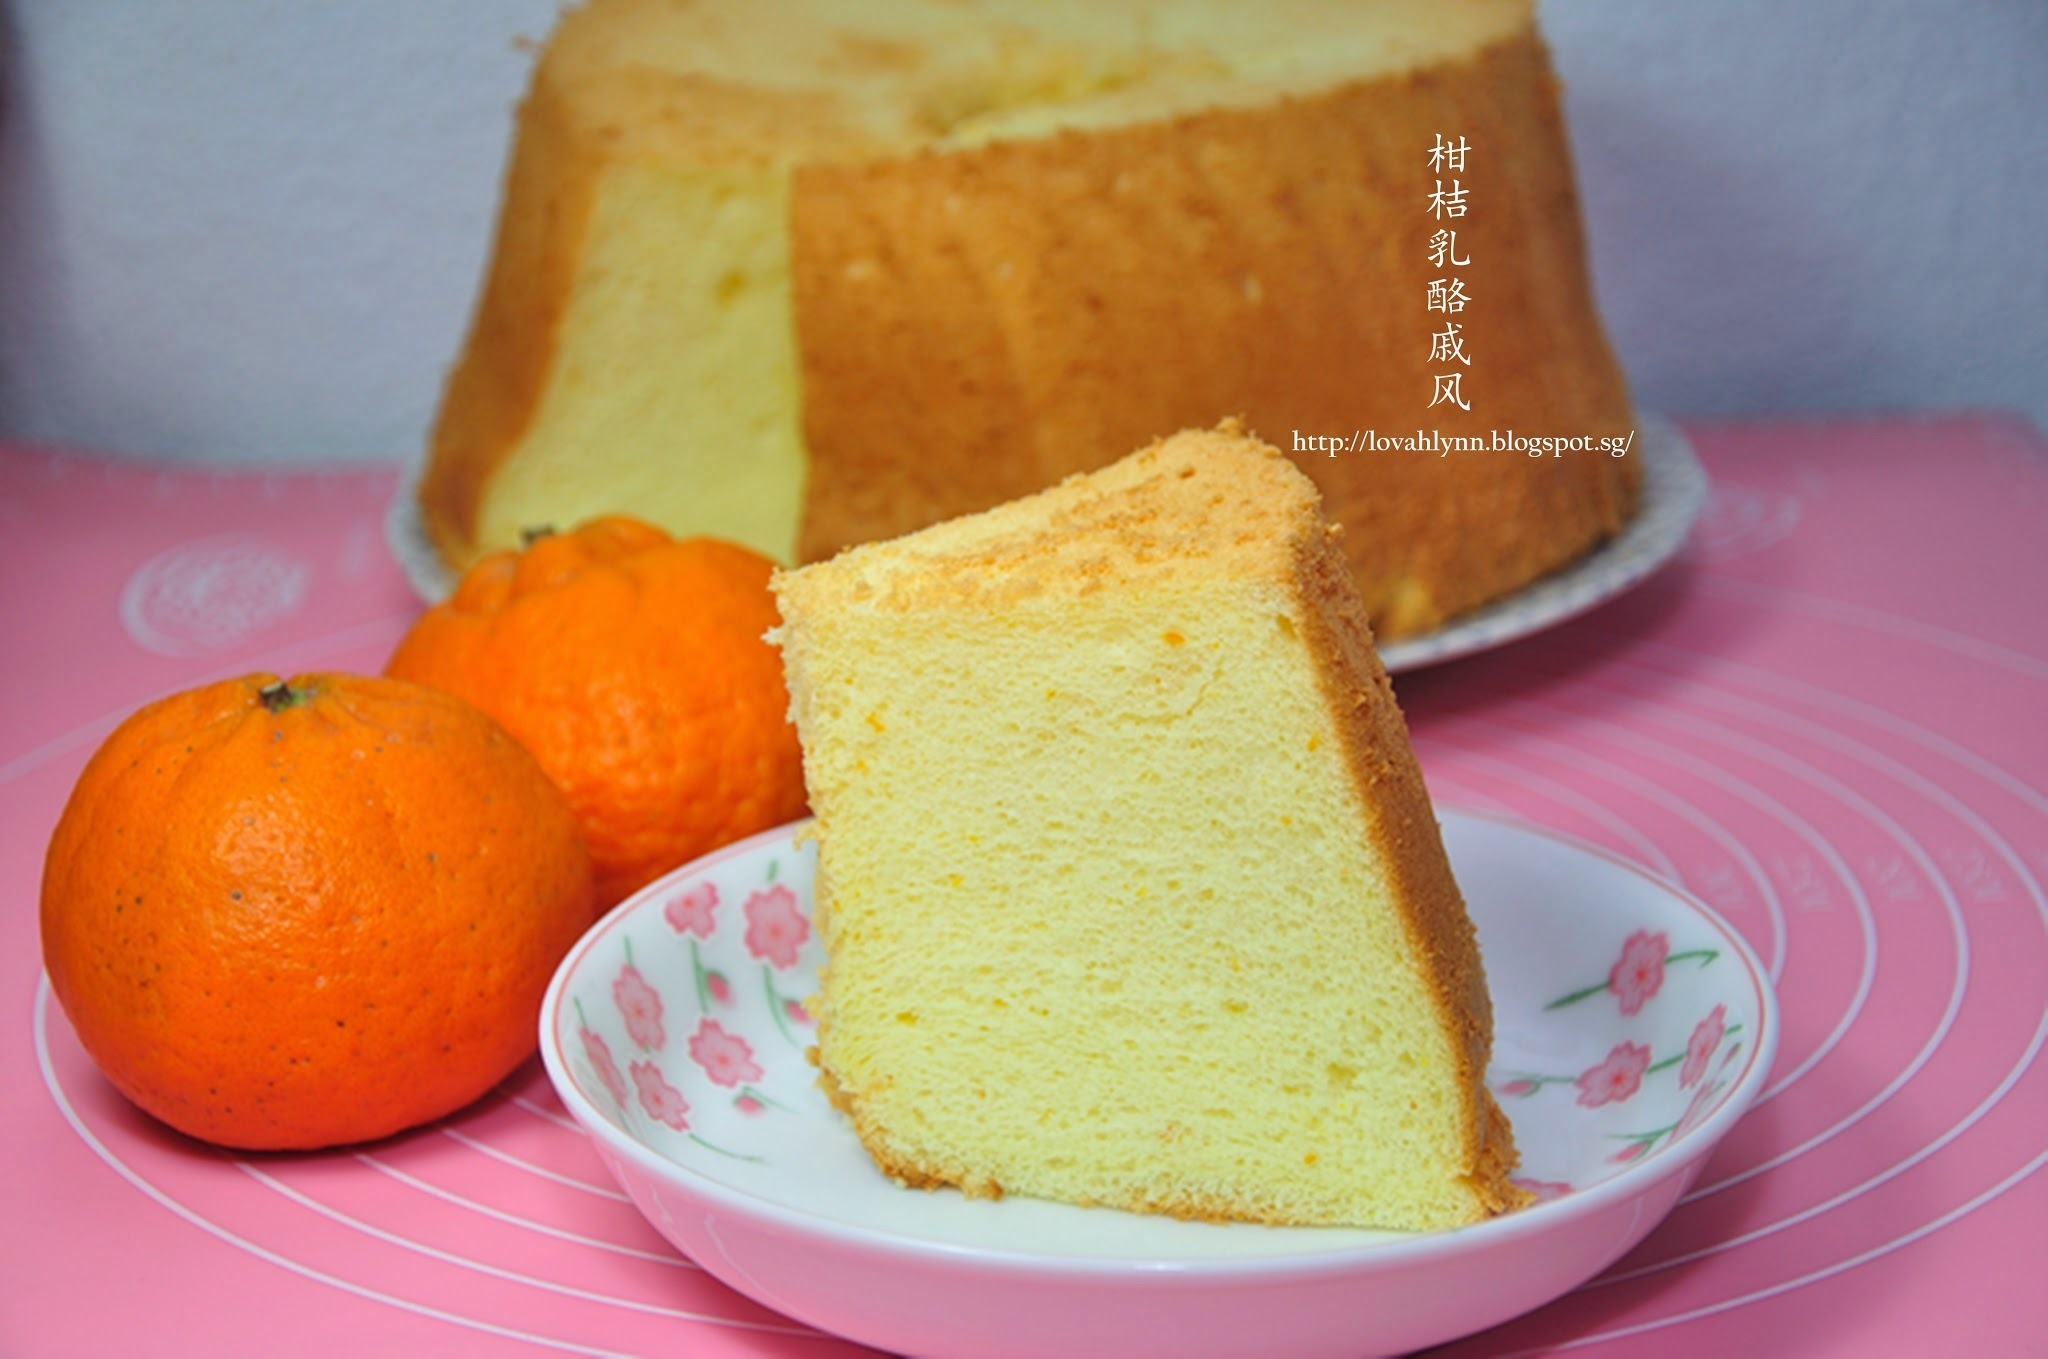 柑桔乳酪戚风蛋糕 Mandarin Orange Cheese Chiffon Cake